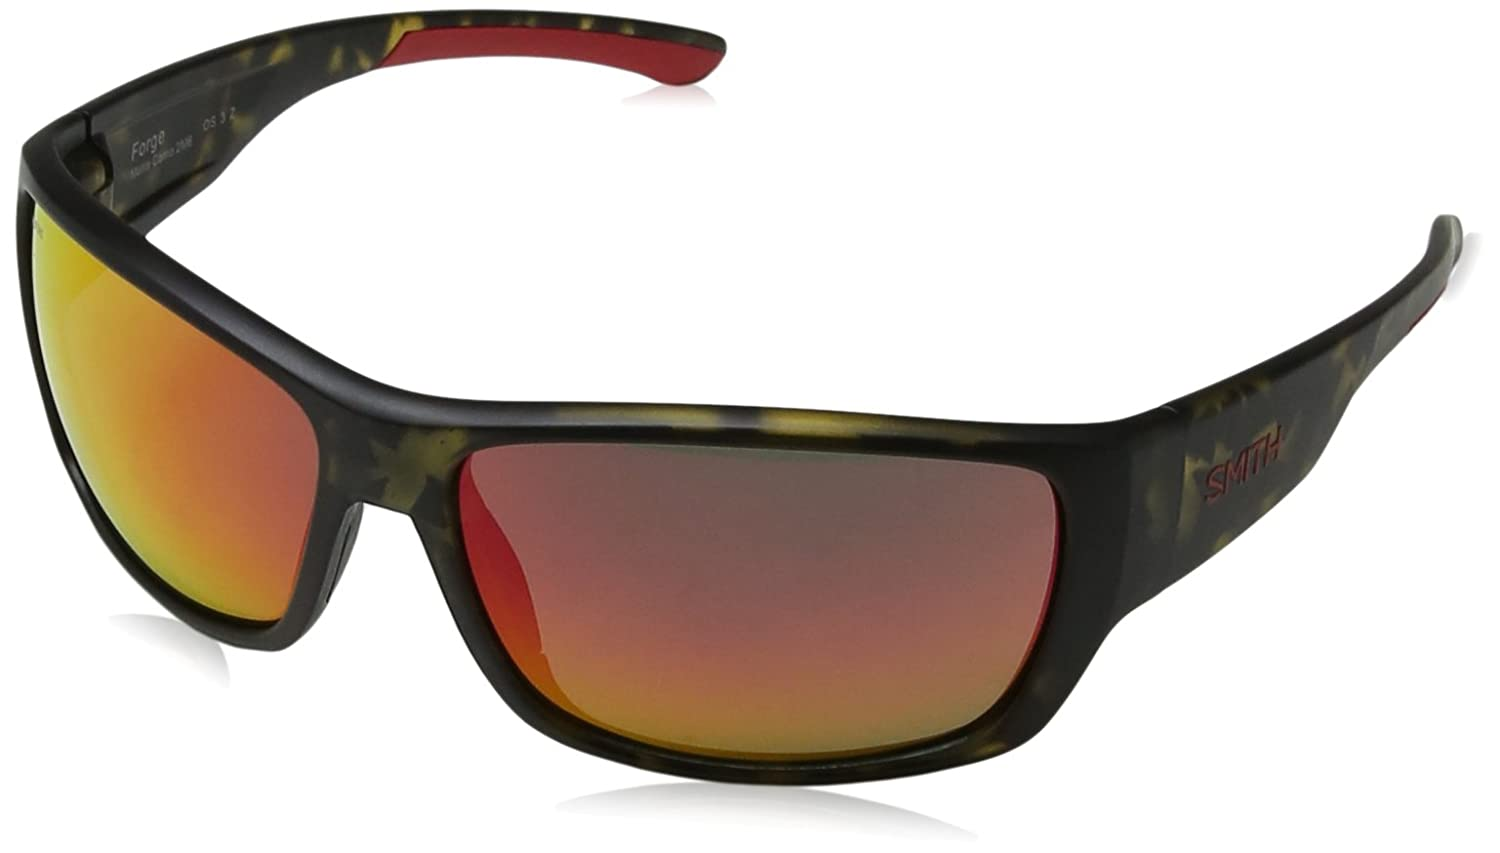 5dfa386a11 Amazon.com  Smith Forge Carbonic Polarized Sunglasses